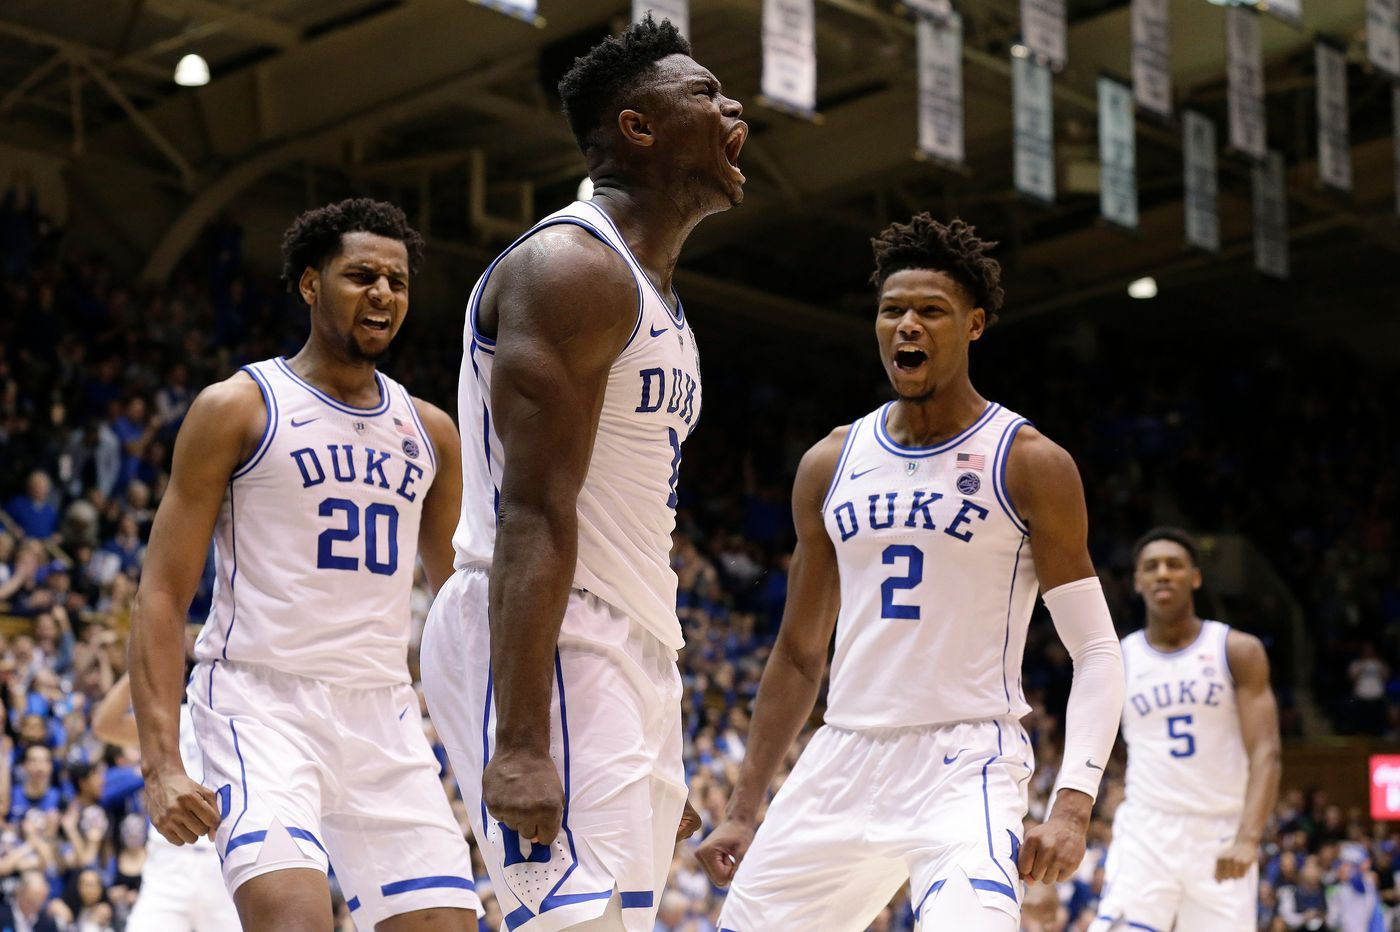 Zion Williamson said he was 'in awe' of former Duke teammate Cam Reddish